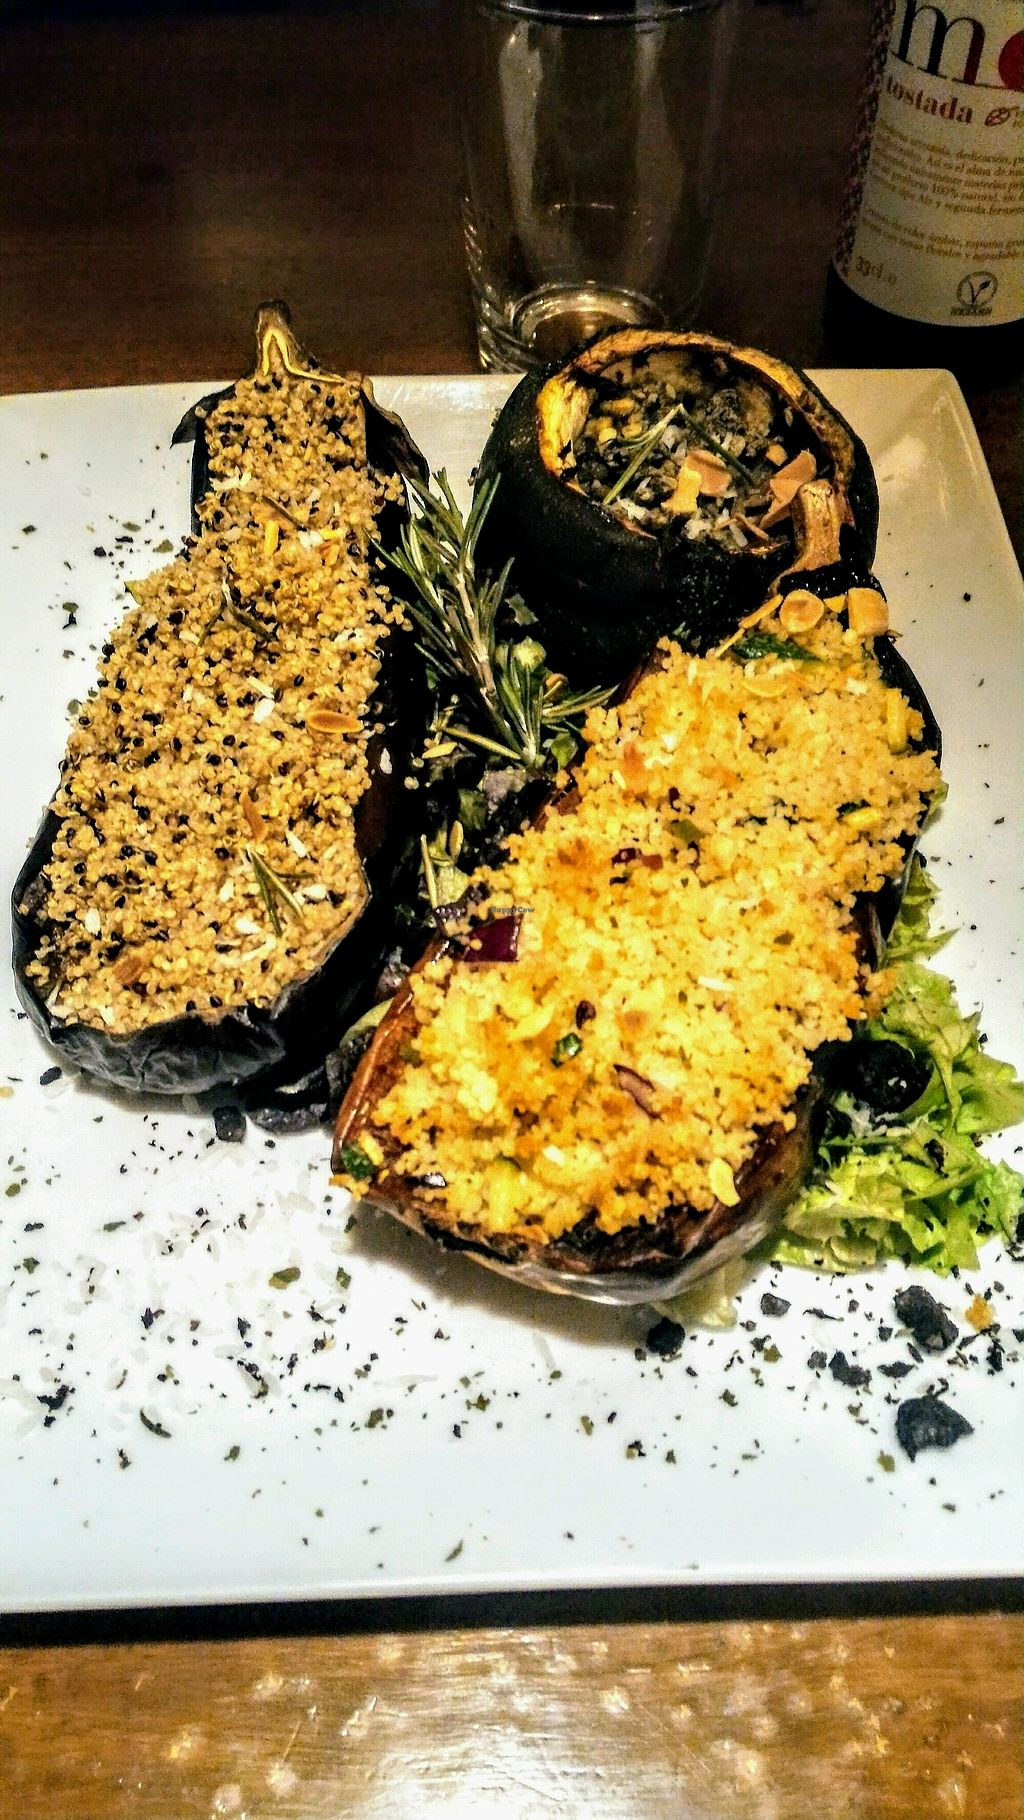 "Photo of Fargo  by <a href=""/members/profile/NaamaTanne"">NaamaTanne</a> <br/>Eggplant and pumpkin stuffed with quinoa and lentils <br/> September 28, 2017  - <a href='/contact/abuse/image/52314/309444'>Report</a>"